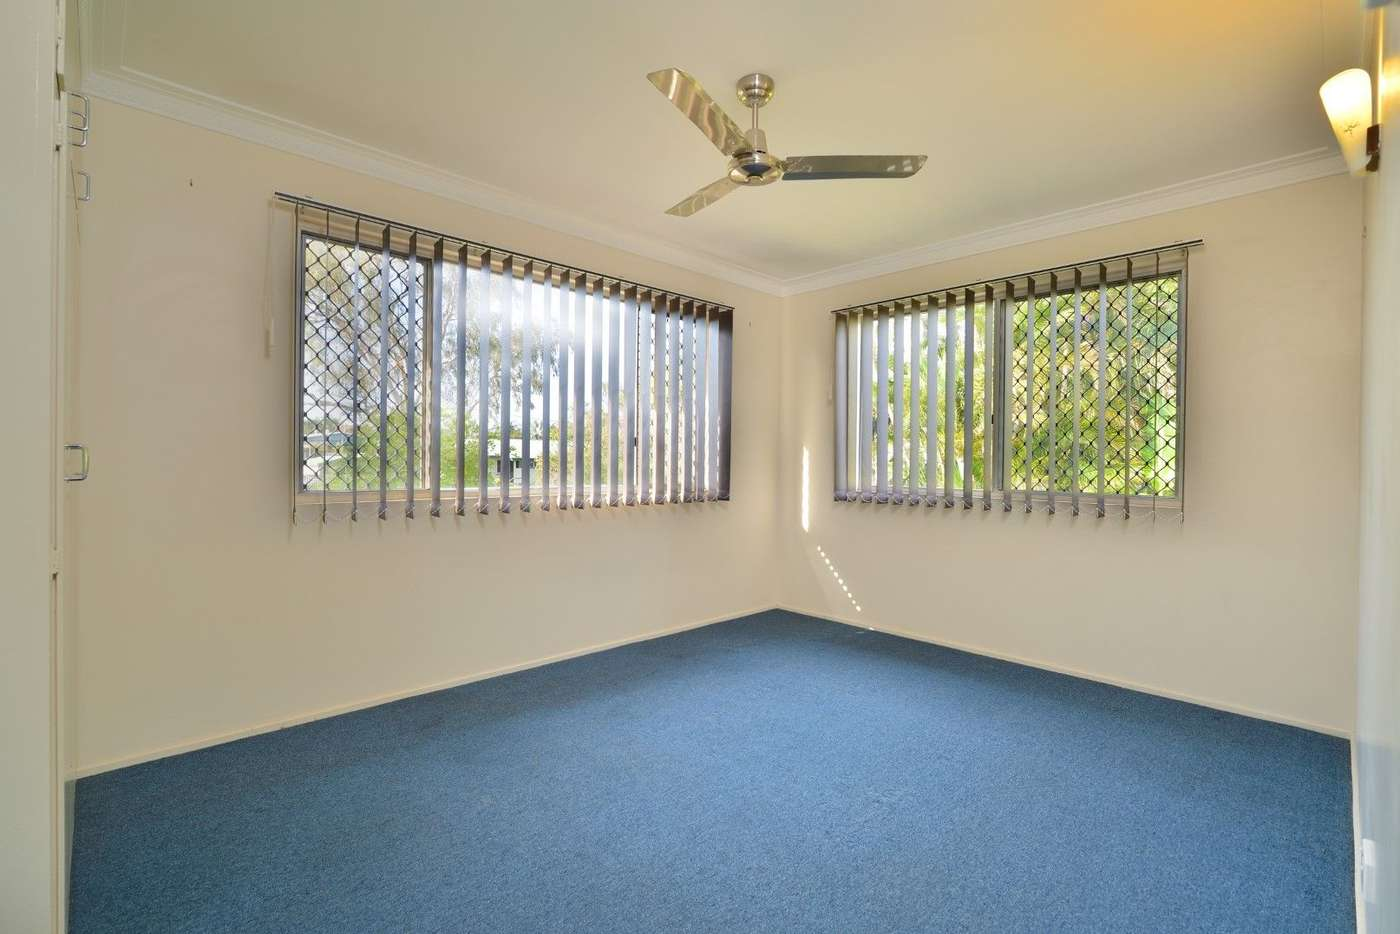 Seventh view of Homely blockOfUnits listing, 99 Barney Street, Barney Point QLD 4680